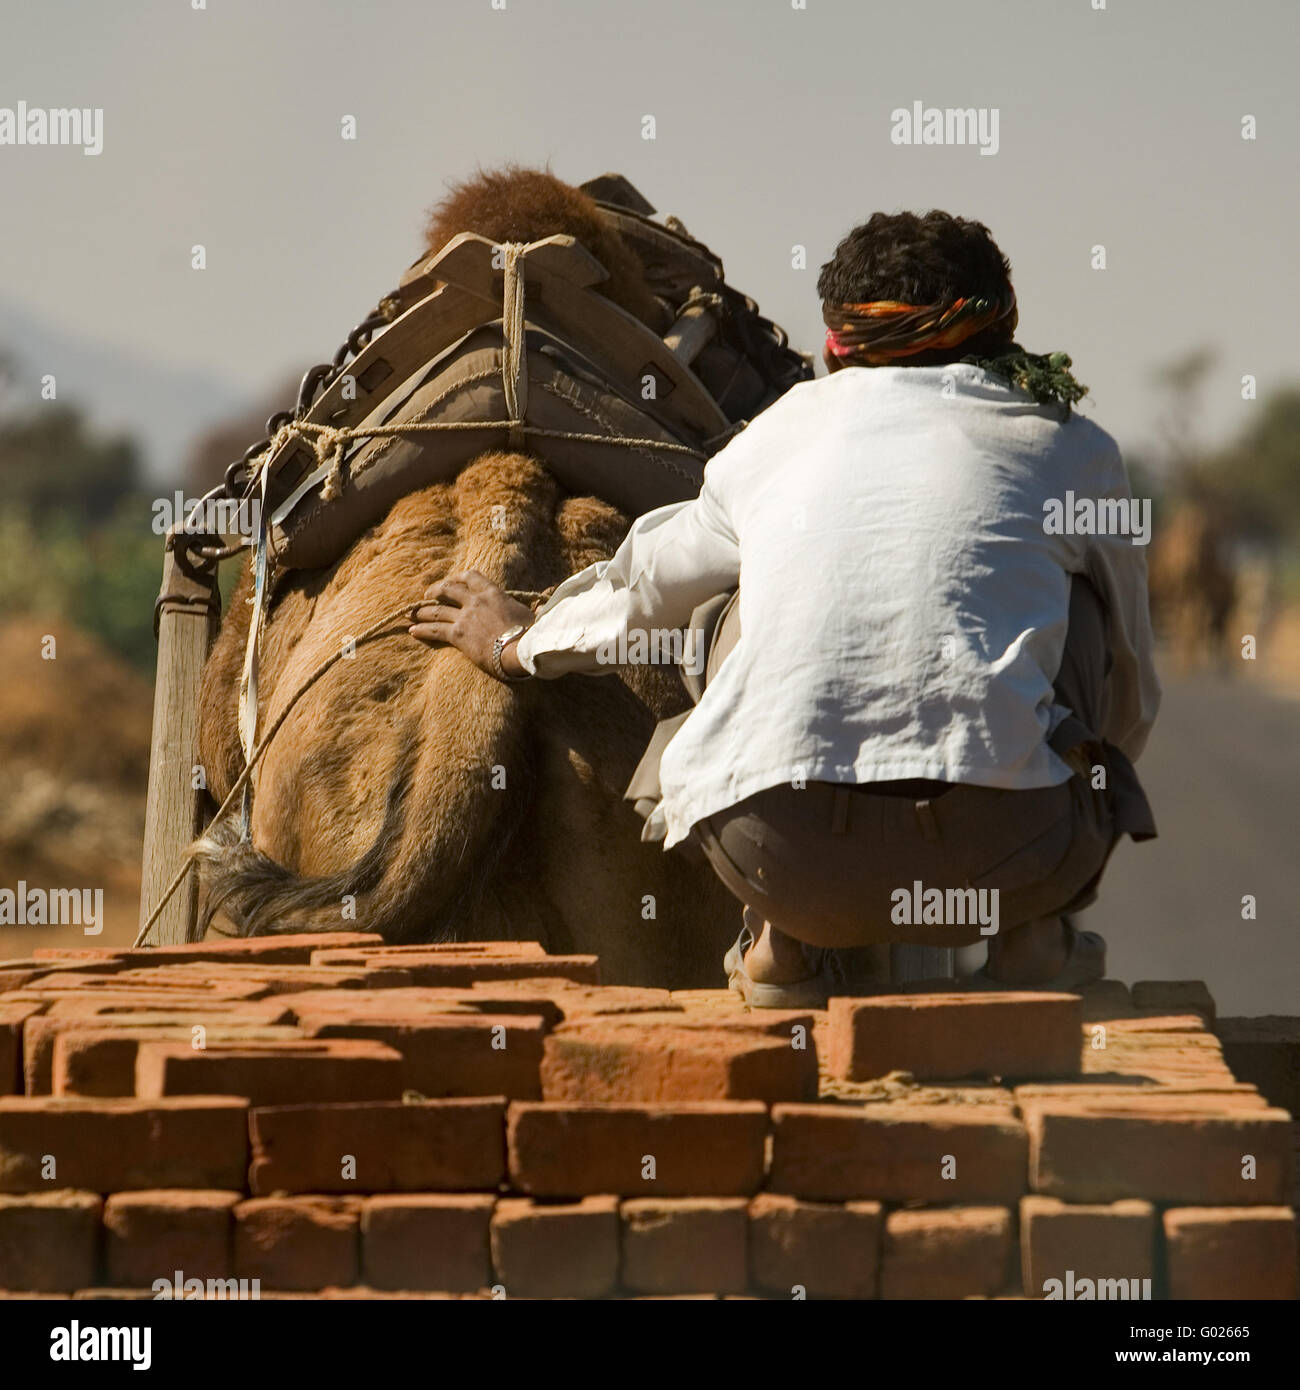 camel with trailer on a street, North India, India, Asia Stock Photo